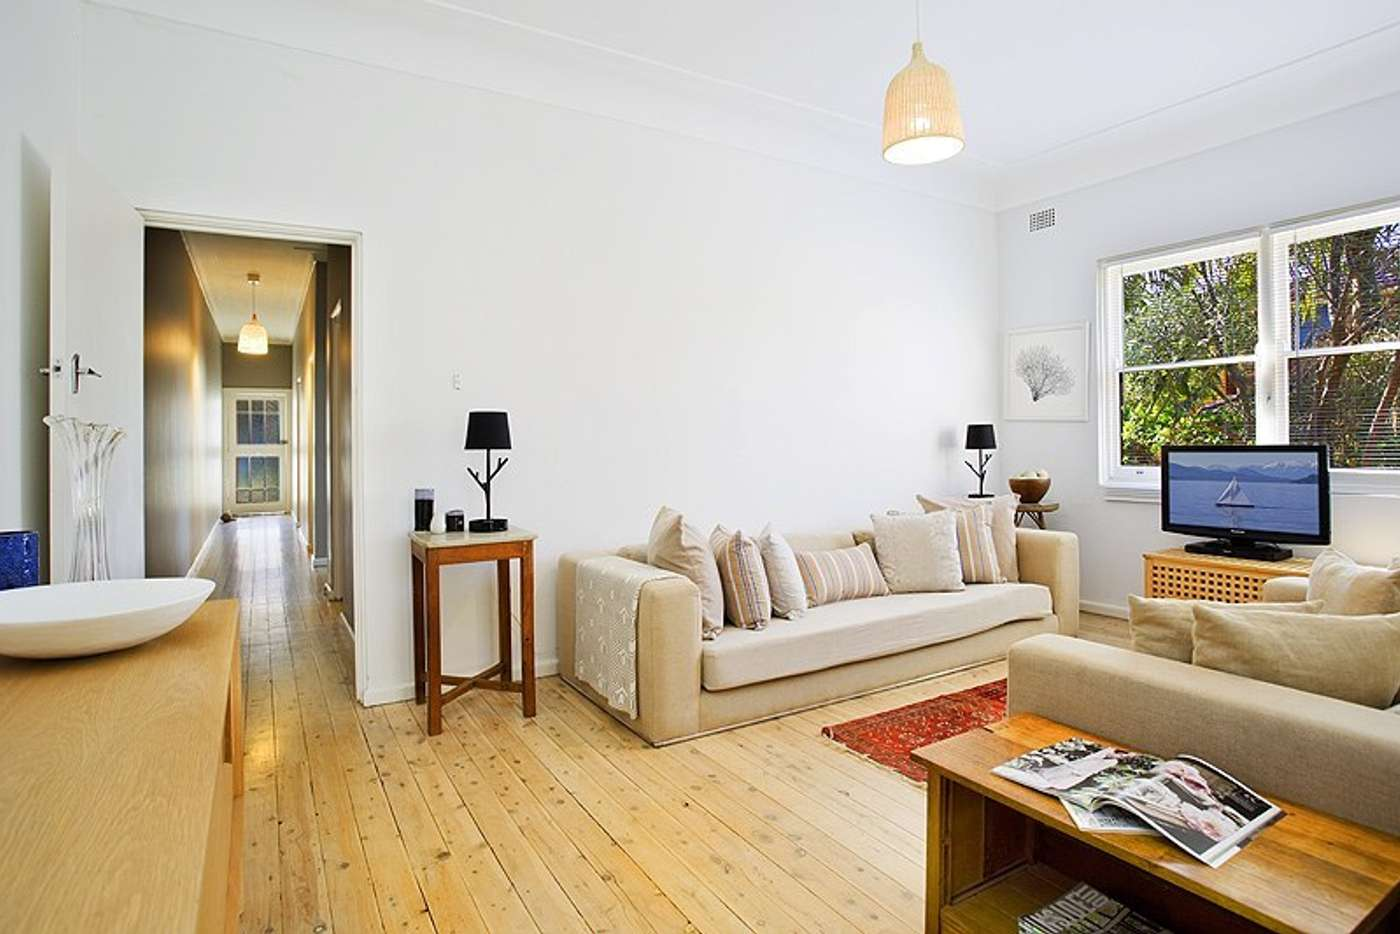 Main view of Homely house listing, 11 Allan Avenue, Clovelly NSW 2031